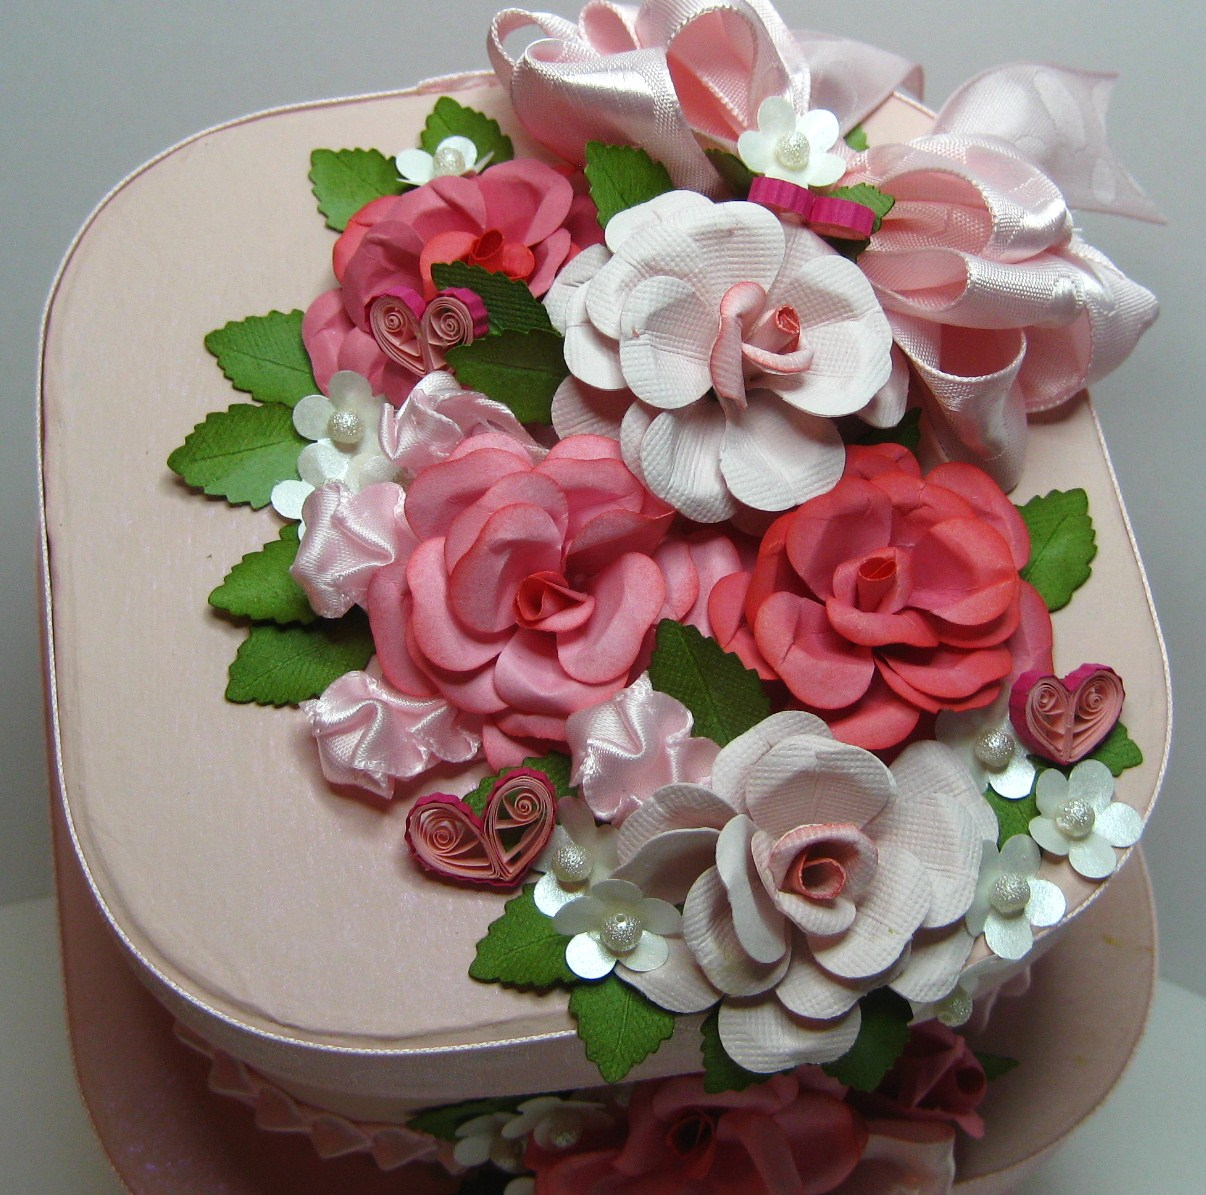 Appel Quilling Garden Floral Punch Rose And Quilled Hearts Cake Box